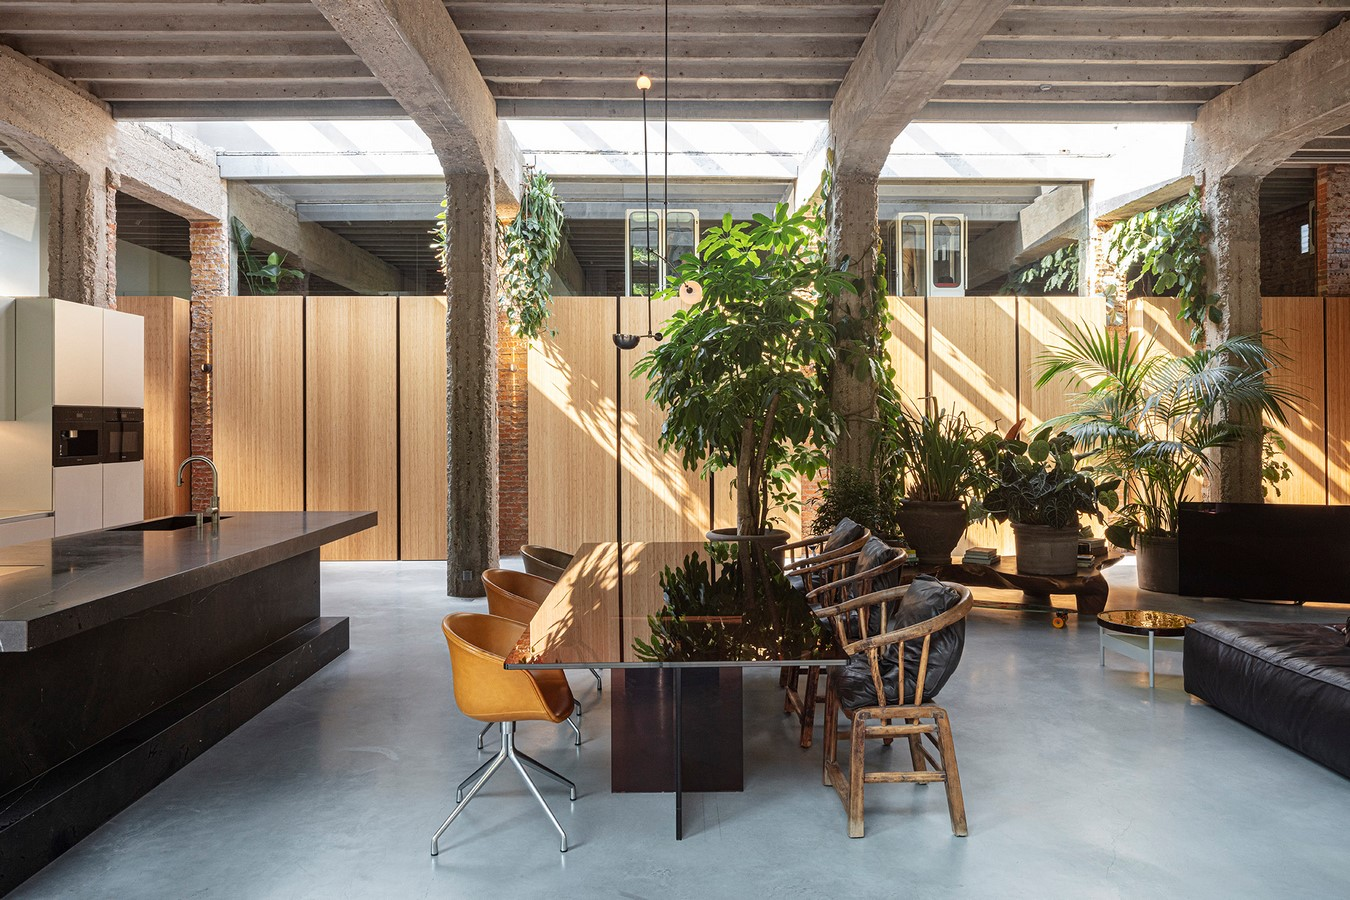 Abandoned 1940s Sports Building converted into New Villa With Naked Brick Walls by MASA Architects - Sheet10